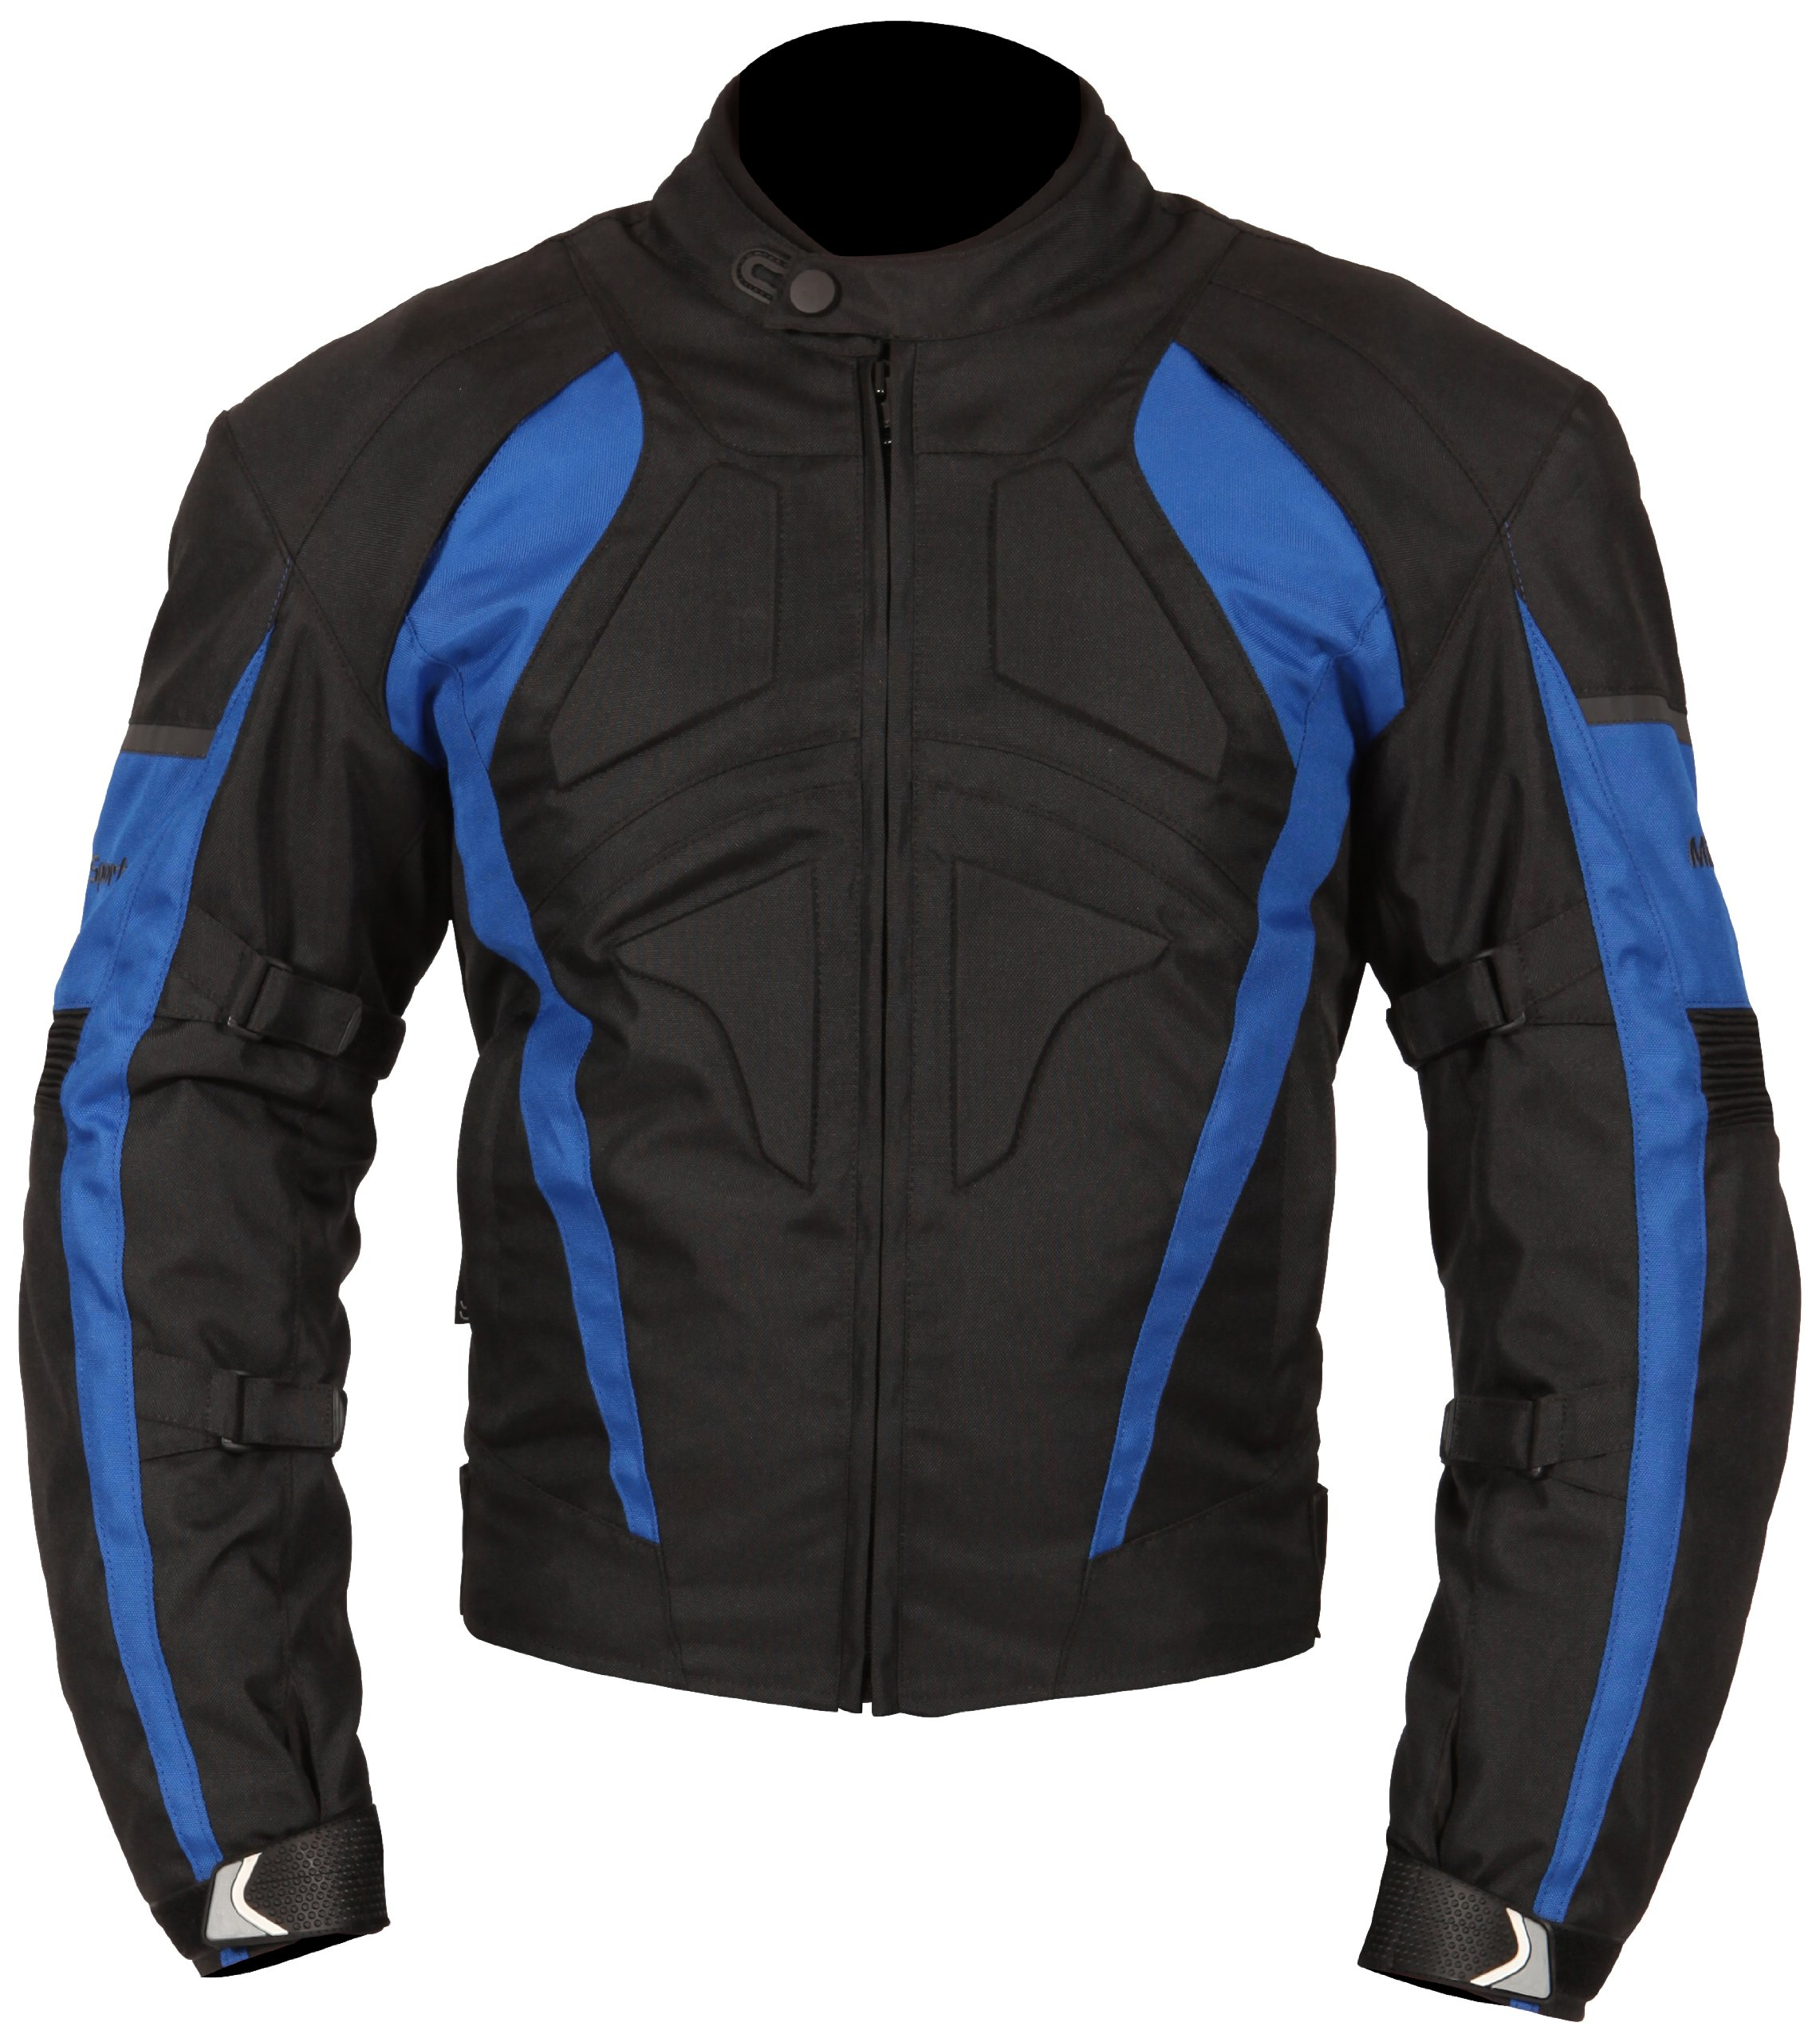 Milano Sport Gamma Motorcycle Jacket with Blue Accent (Black, XX-Large)